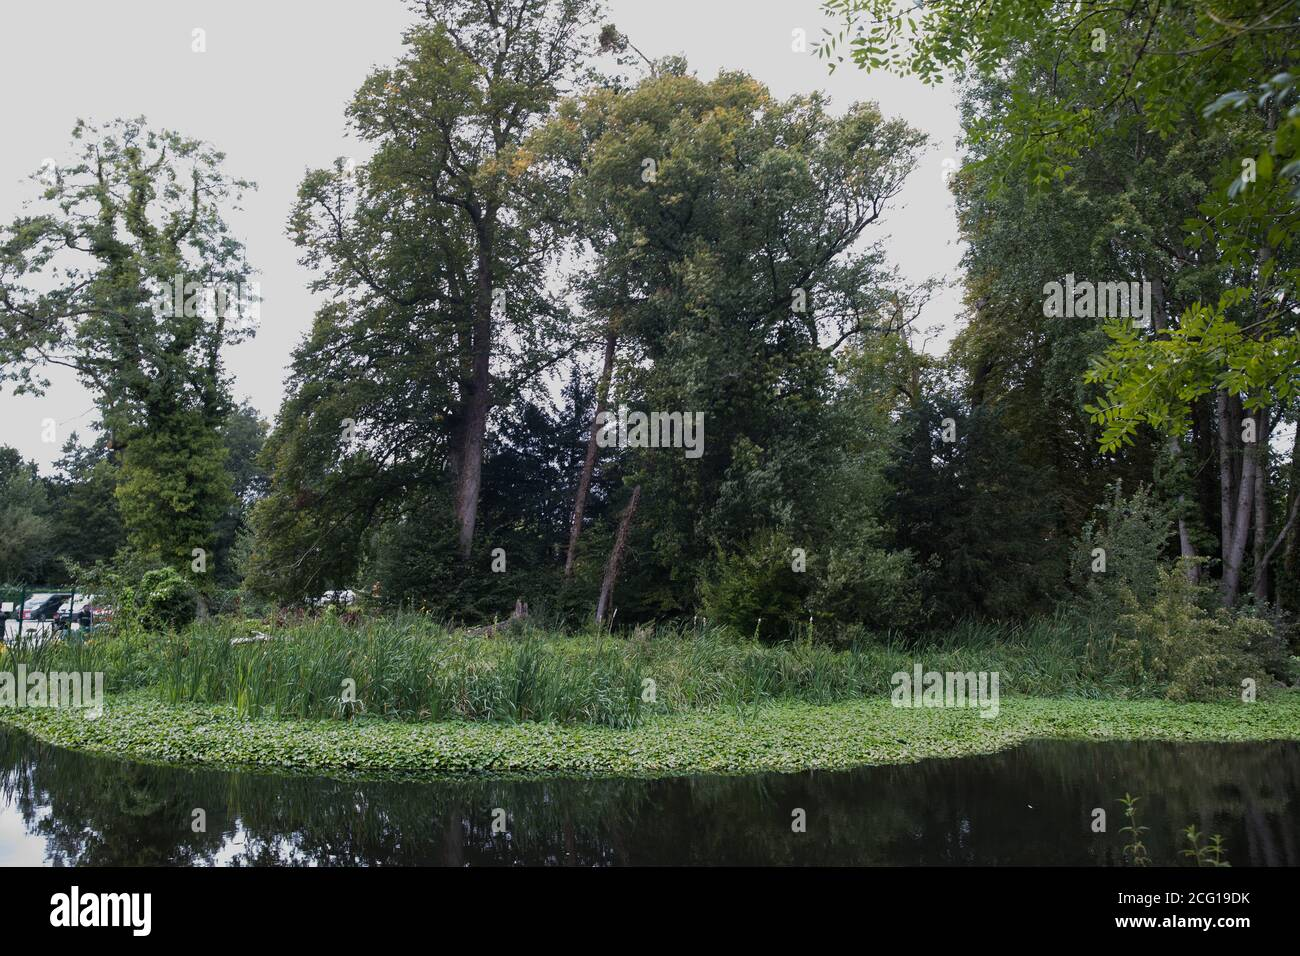 Denham, UK. 7th September, 2020. A large tree suddenly falls to the ground adjacent to a construction site for the HS2 high-speed rail link at Denham Ford. Credit: Mark Kerrison/Alamy Live News Stock Photo